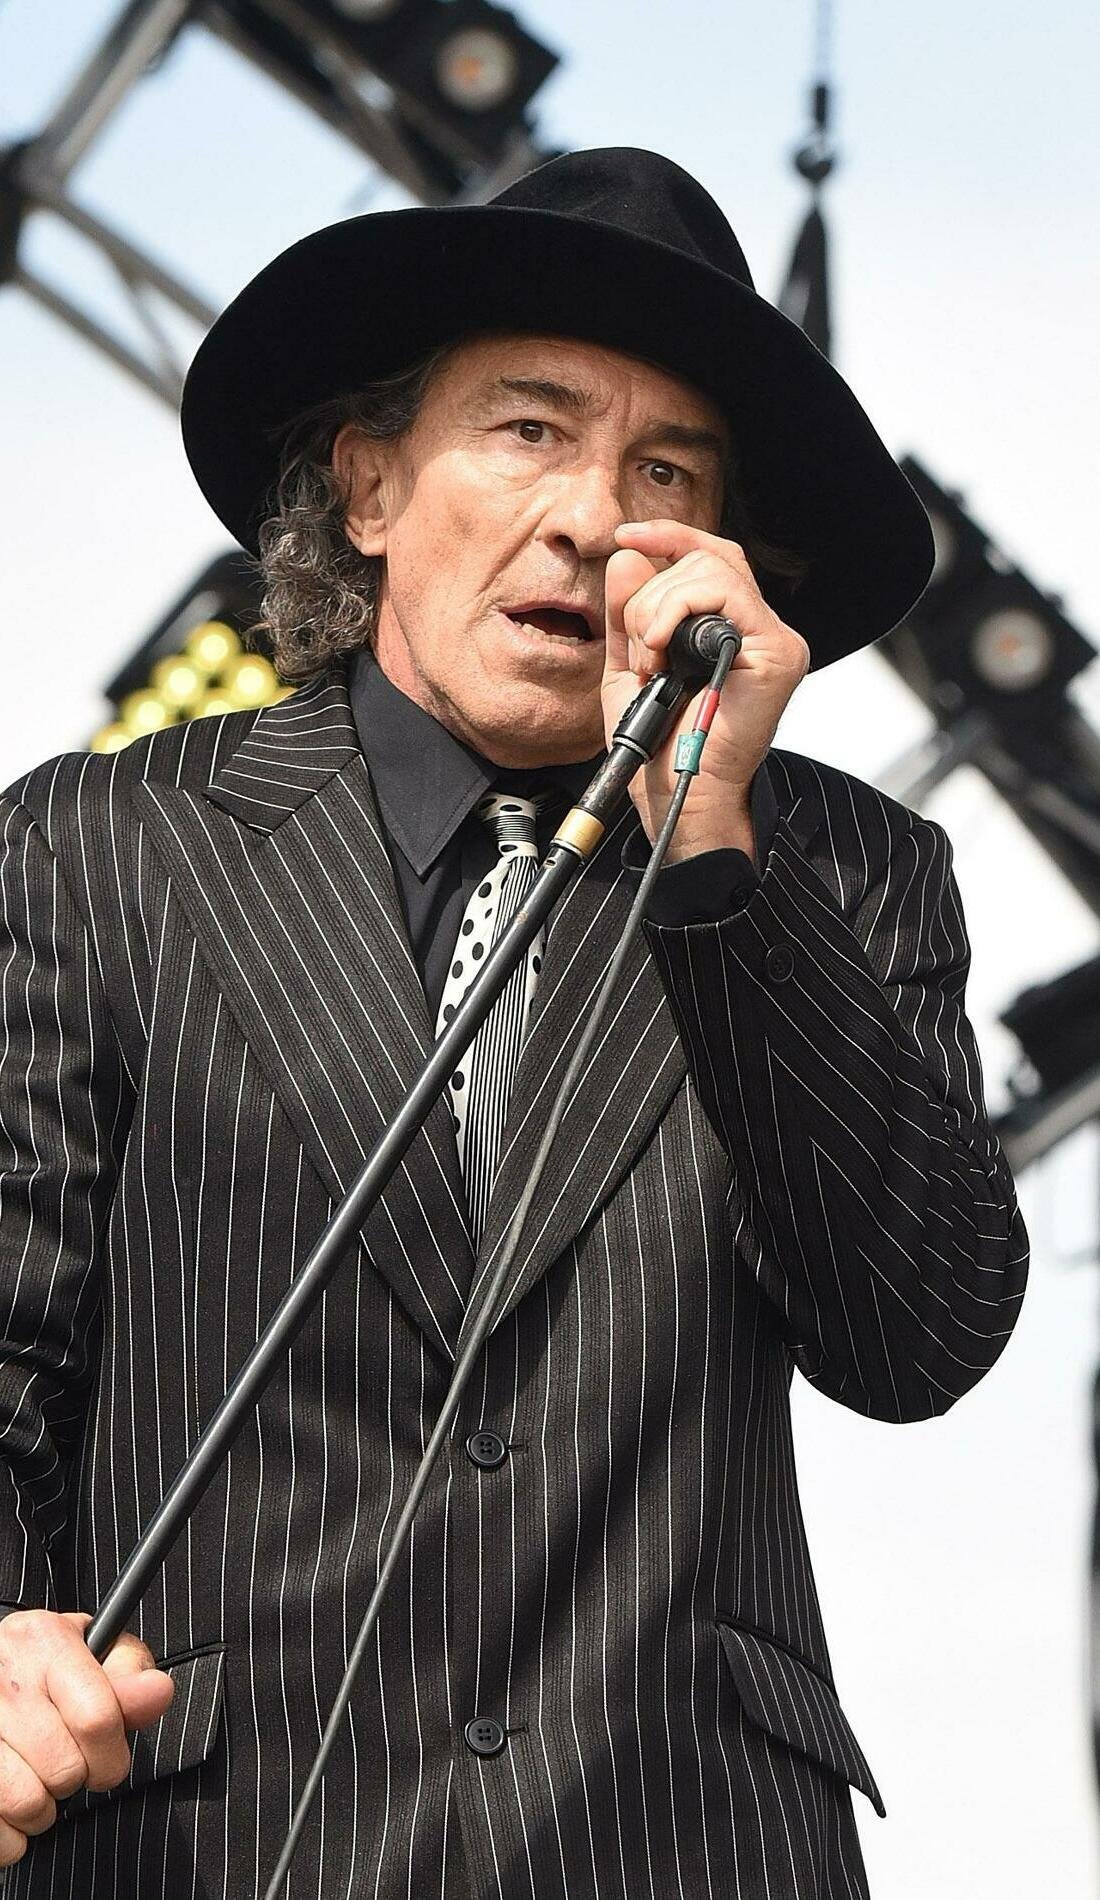 A The Tubes live event